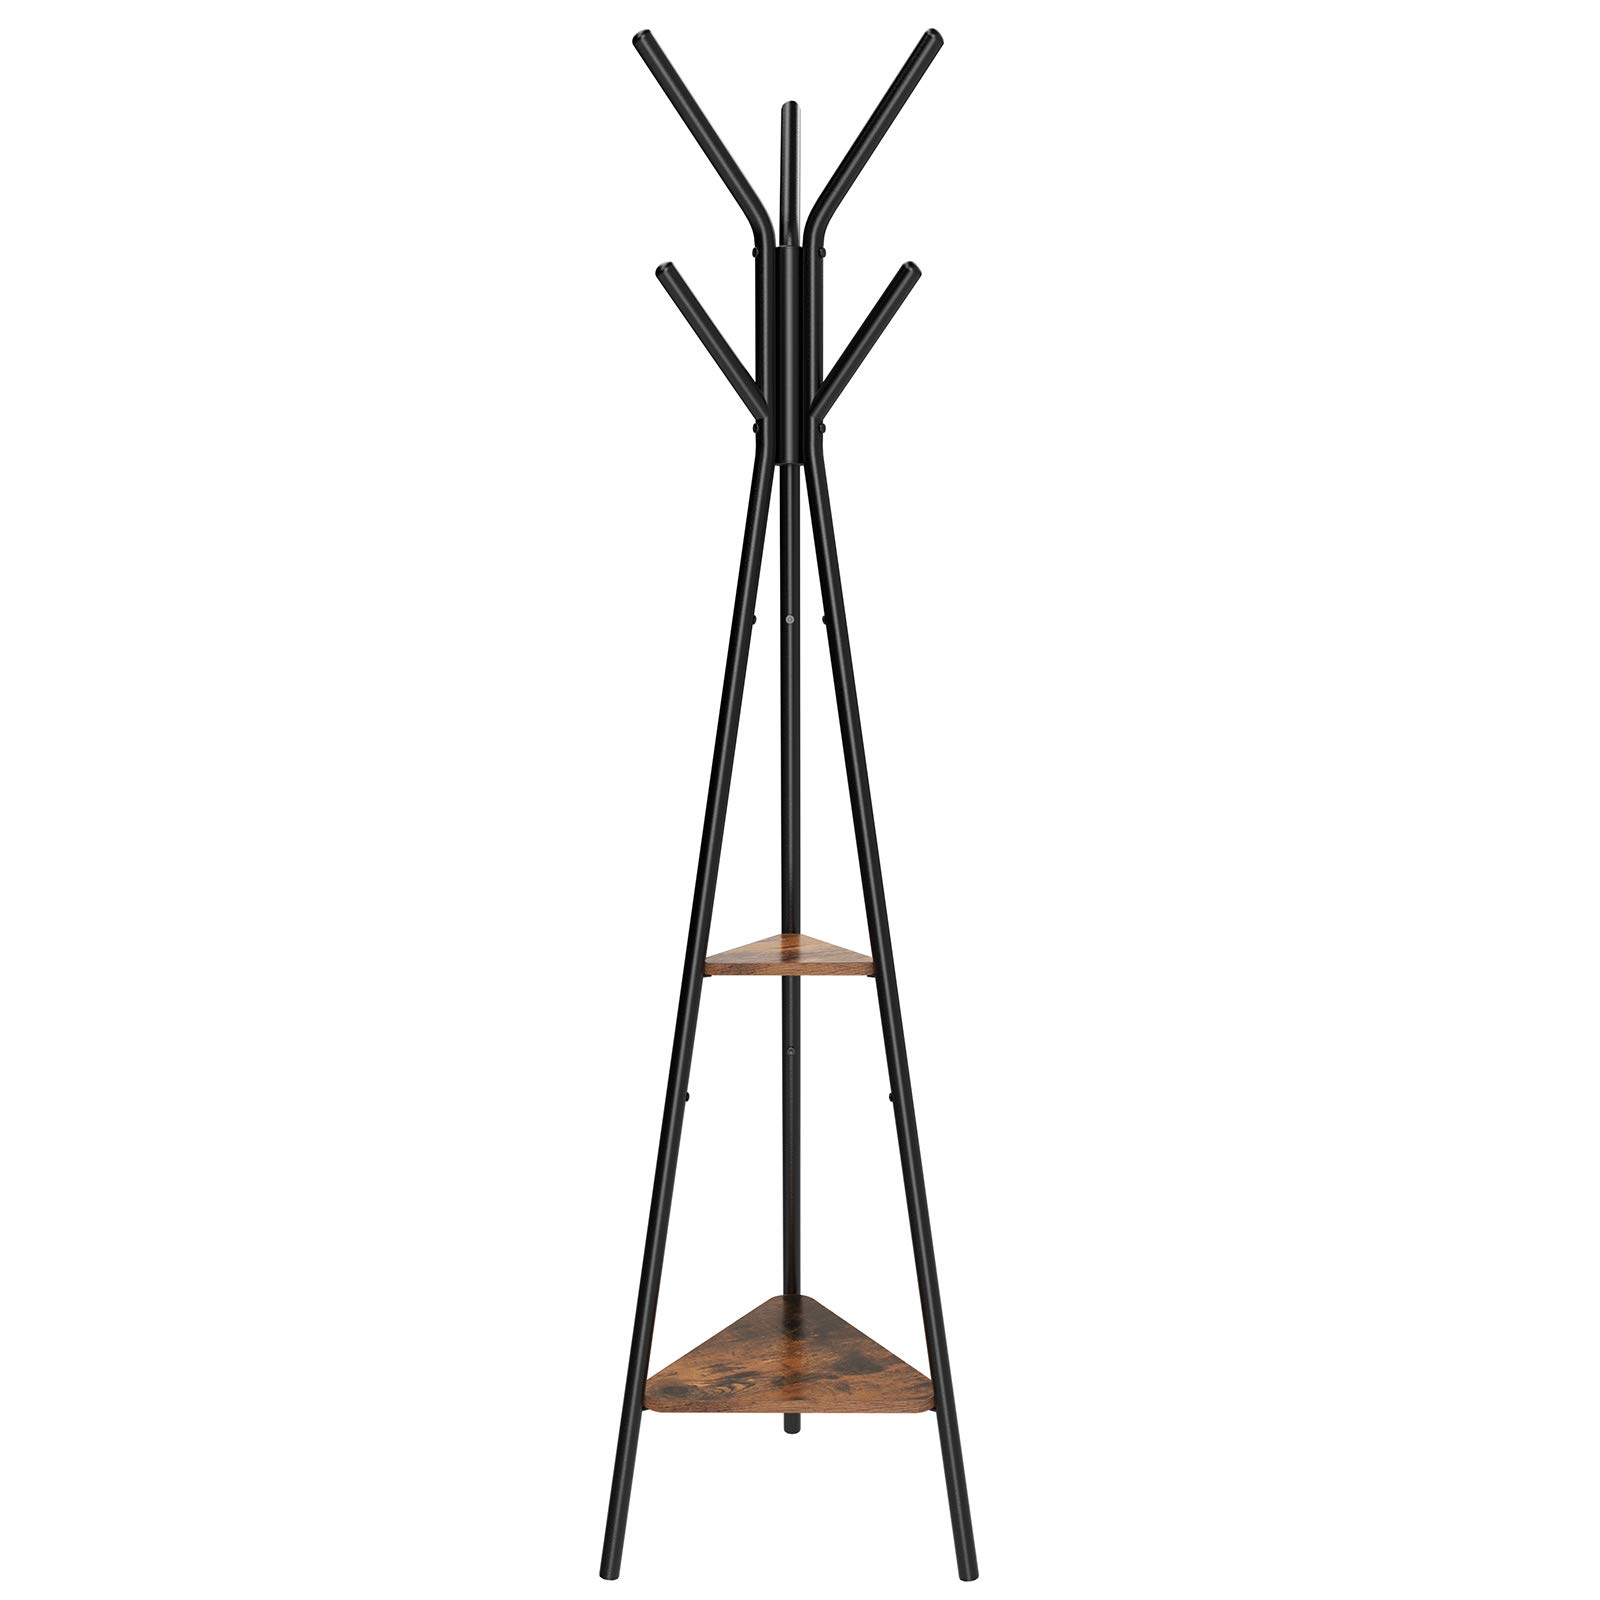 SONGMICS Coat Rack Stand, Coat Tree, Hall Tree Free Standing, Industrial Style, with 2 Shelves, for Clothes, Hat, Bag, Black, Vintage URCR16BX by SONGMICS